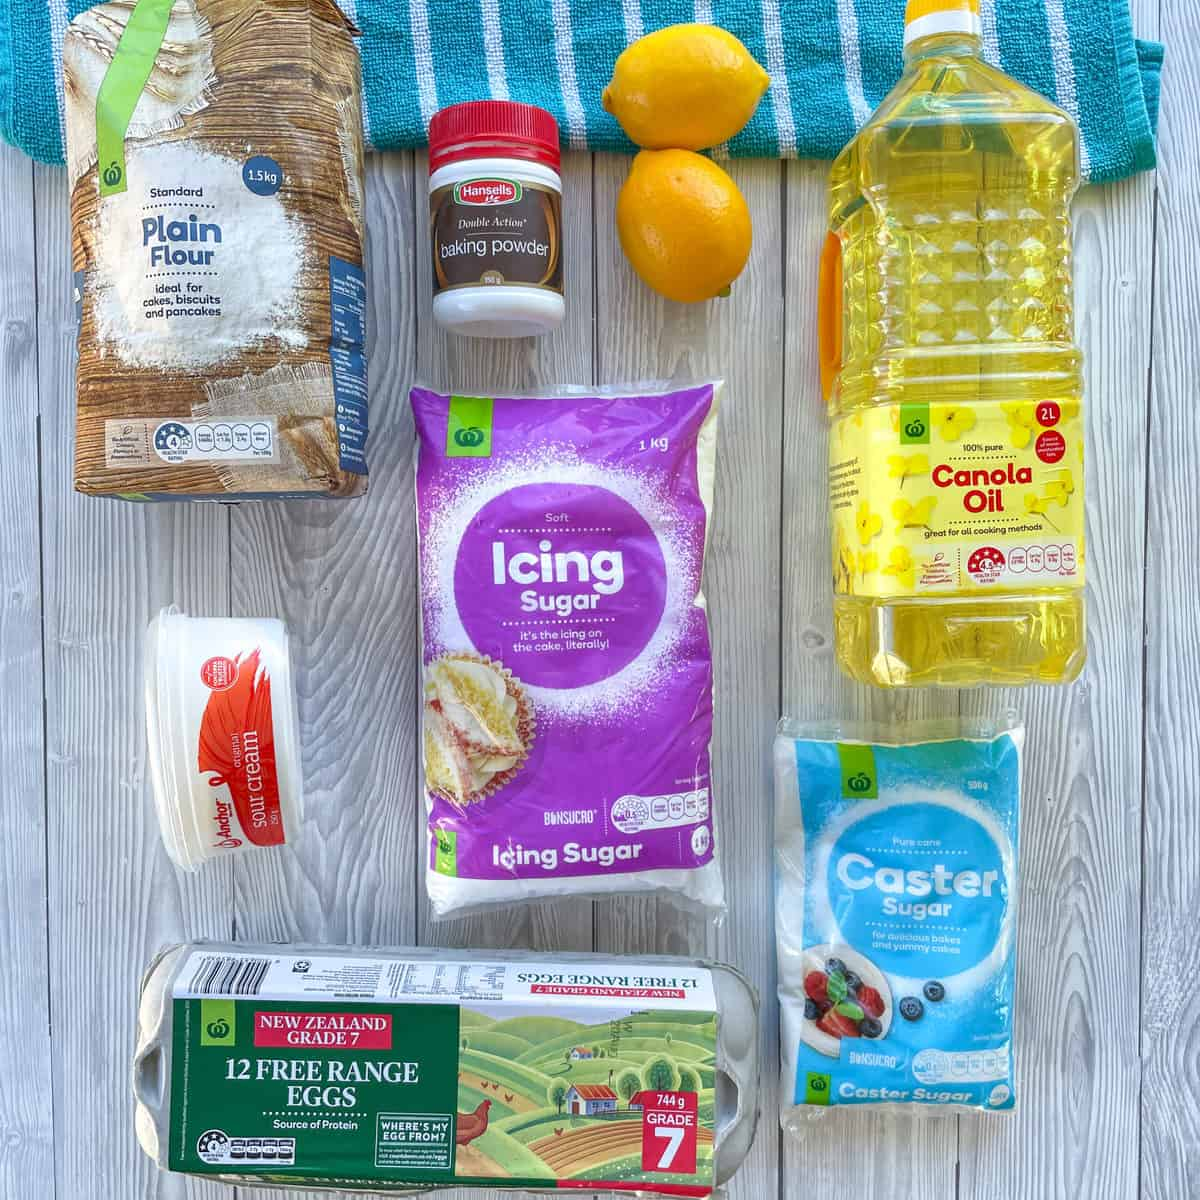 Ingredients for Lemon Syrup Cake provided by Countdown Supermarkets showing the brands I use